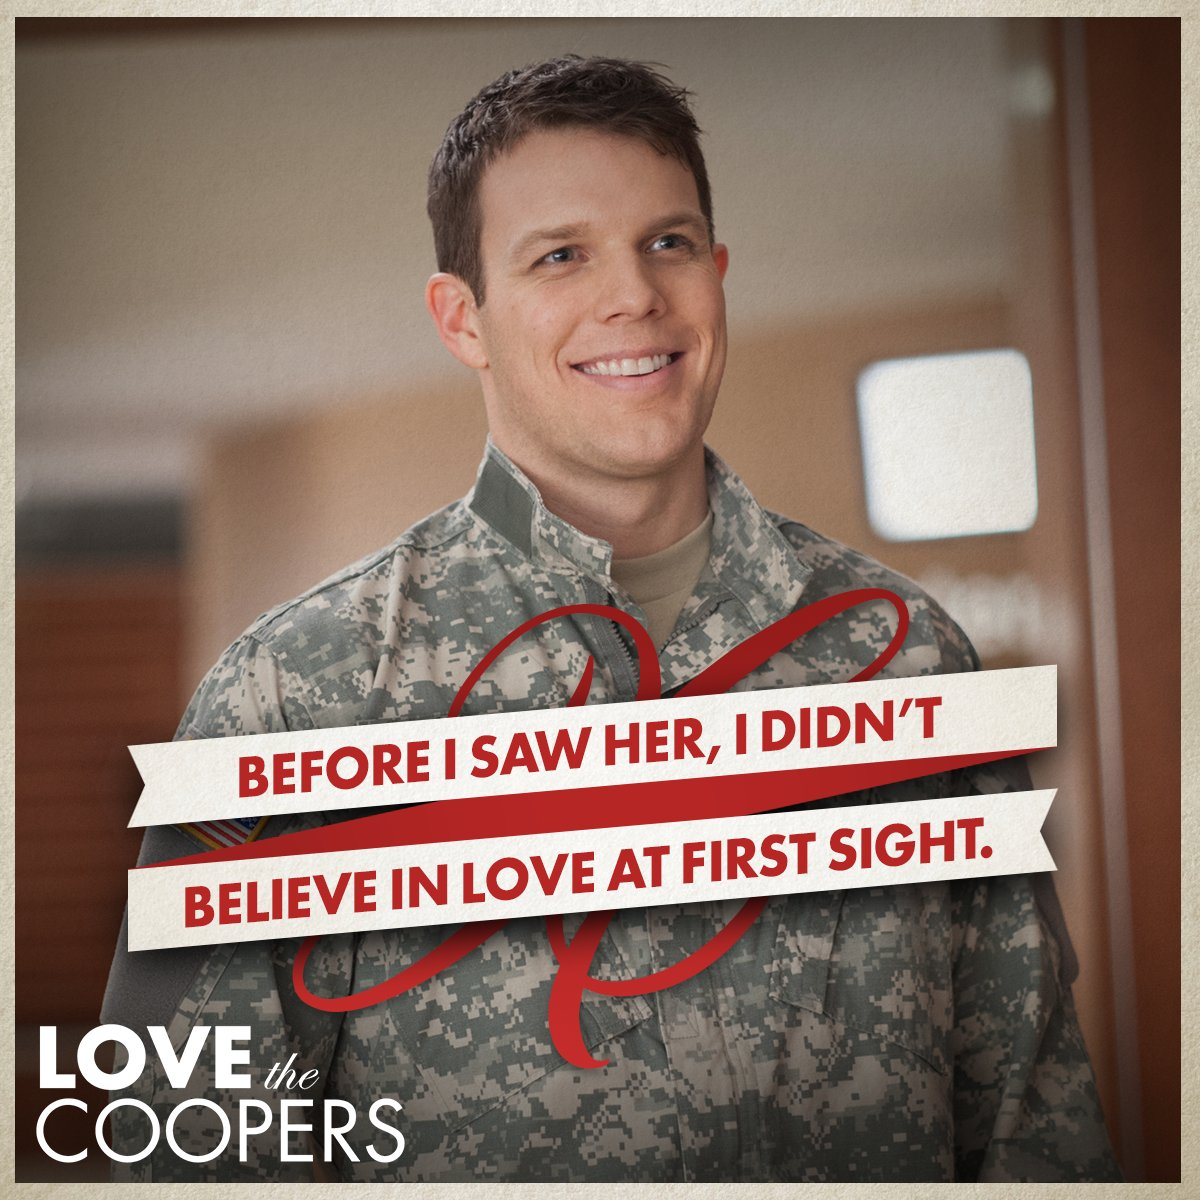 Do you believe it's possible? #LoveTheCoopers https://t.co/Bti0BBB2GQ